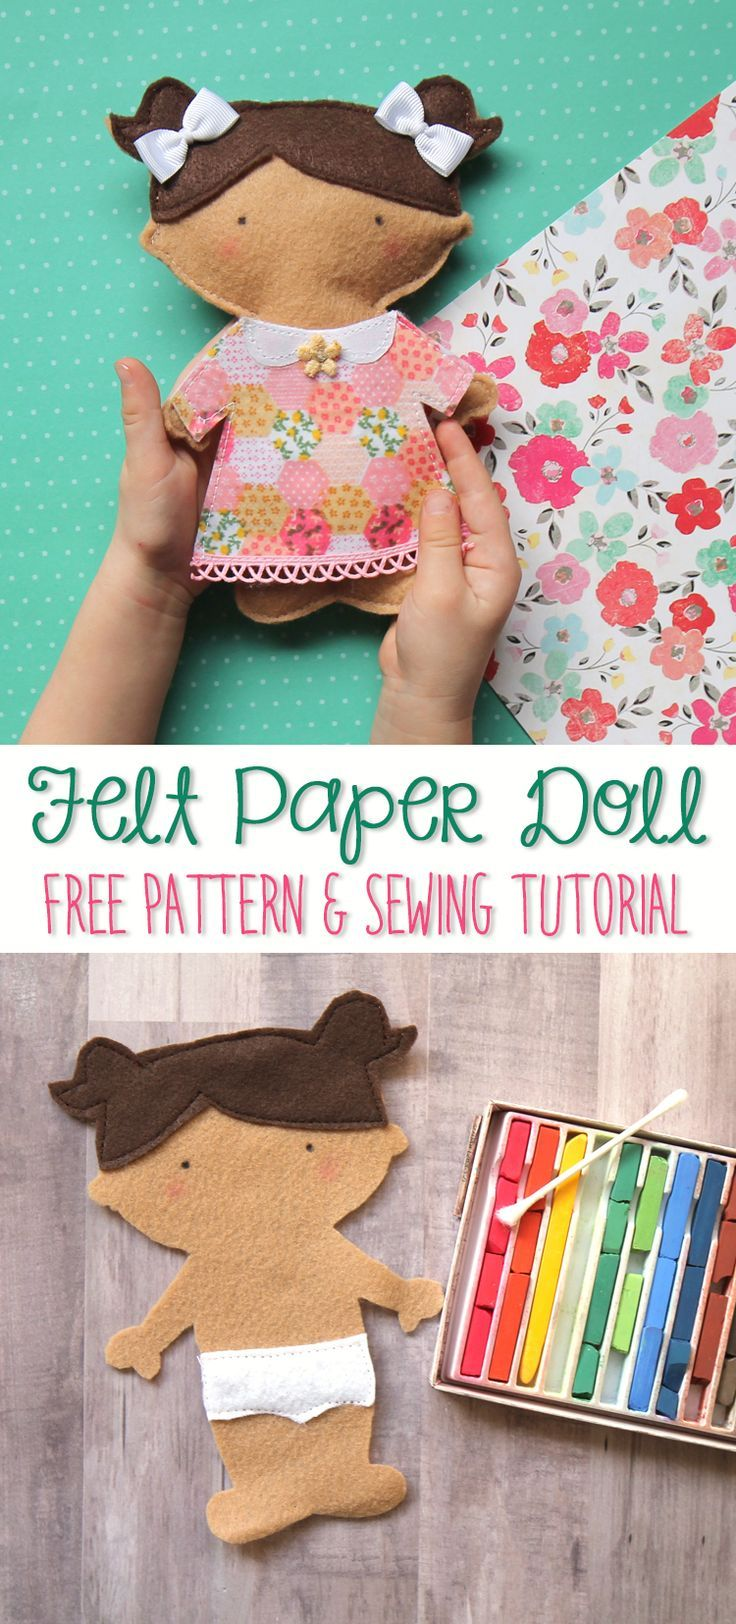 Little gils new jewellery for children first birthday gift ideas - Make Your Gifts Special Make Your Life Special So Stinkin Cute This Diy Felt Paper Doll Free Sewing Pattern And Tutorial Is The Perfect